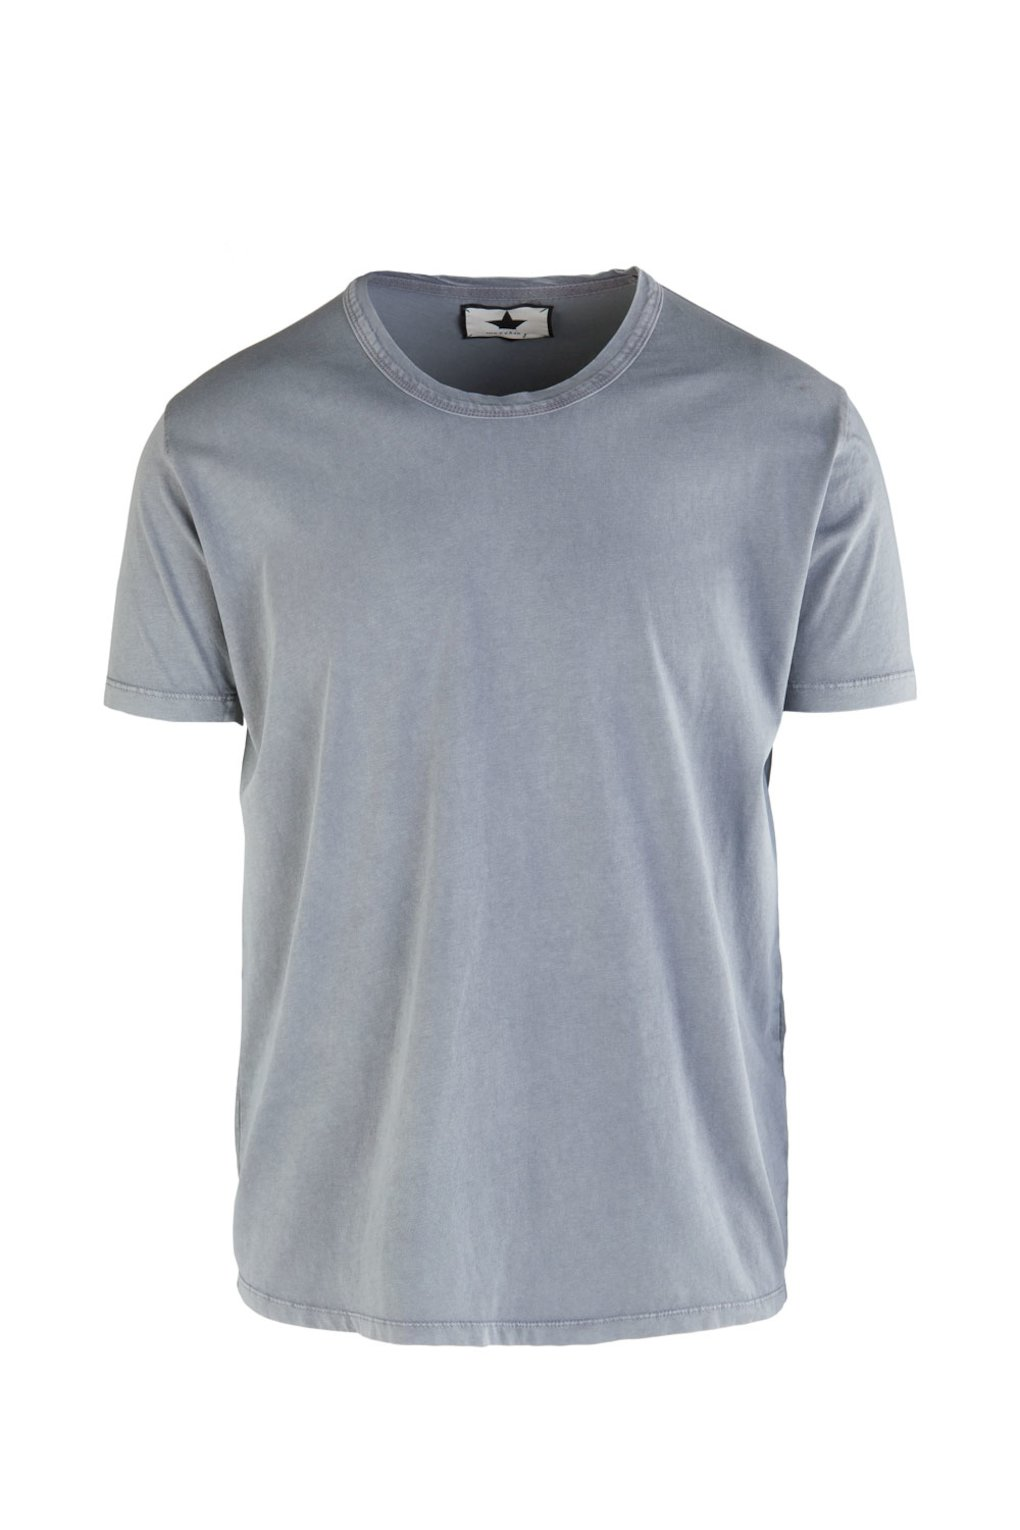 Stone Washed T-Shirt